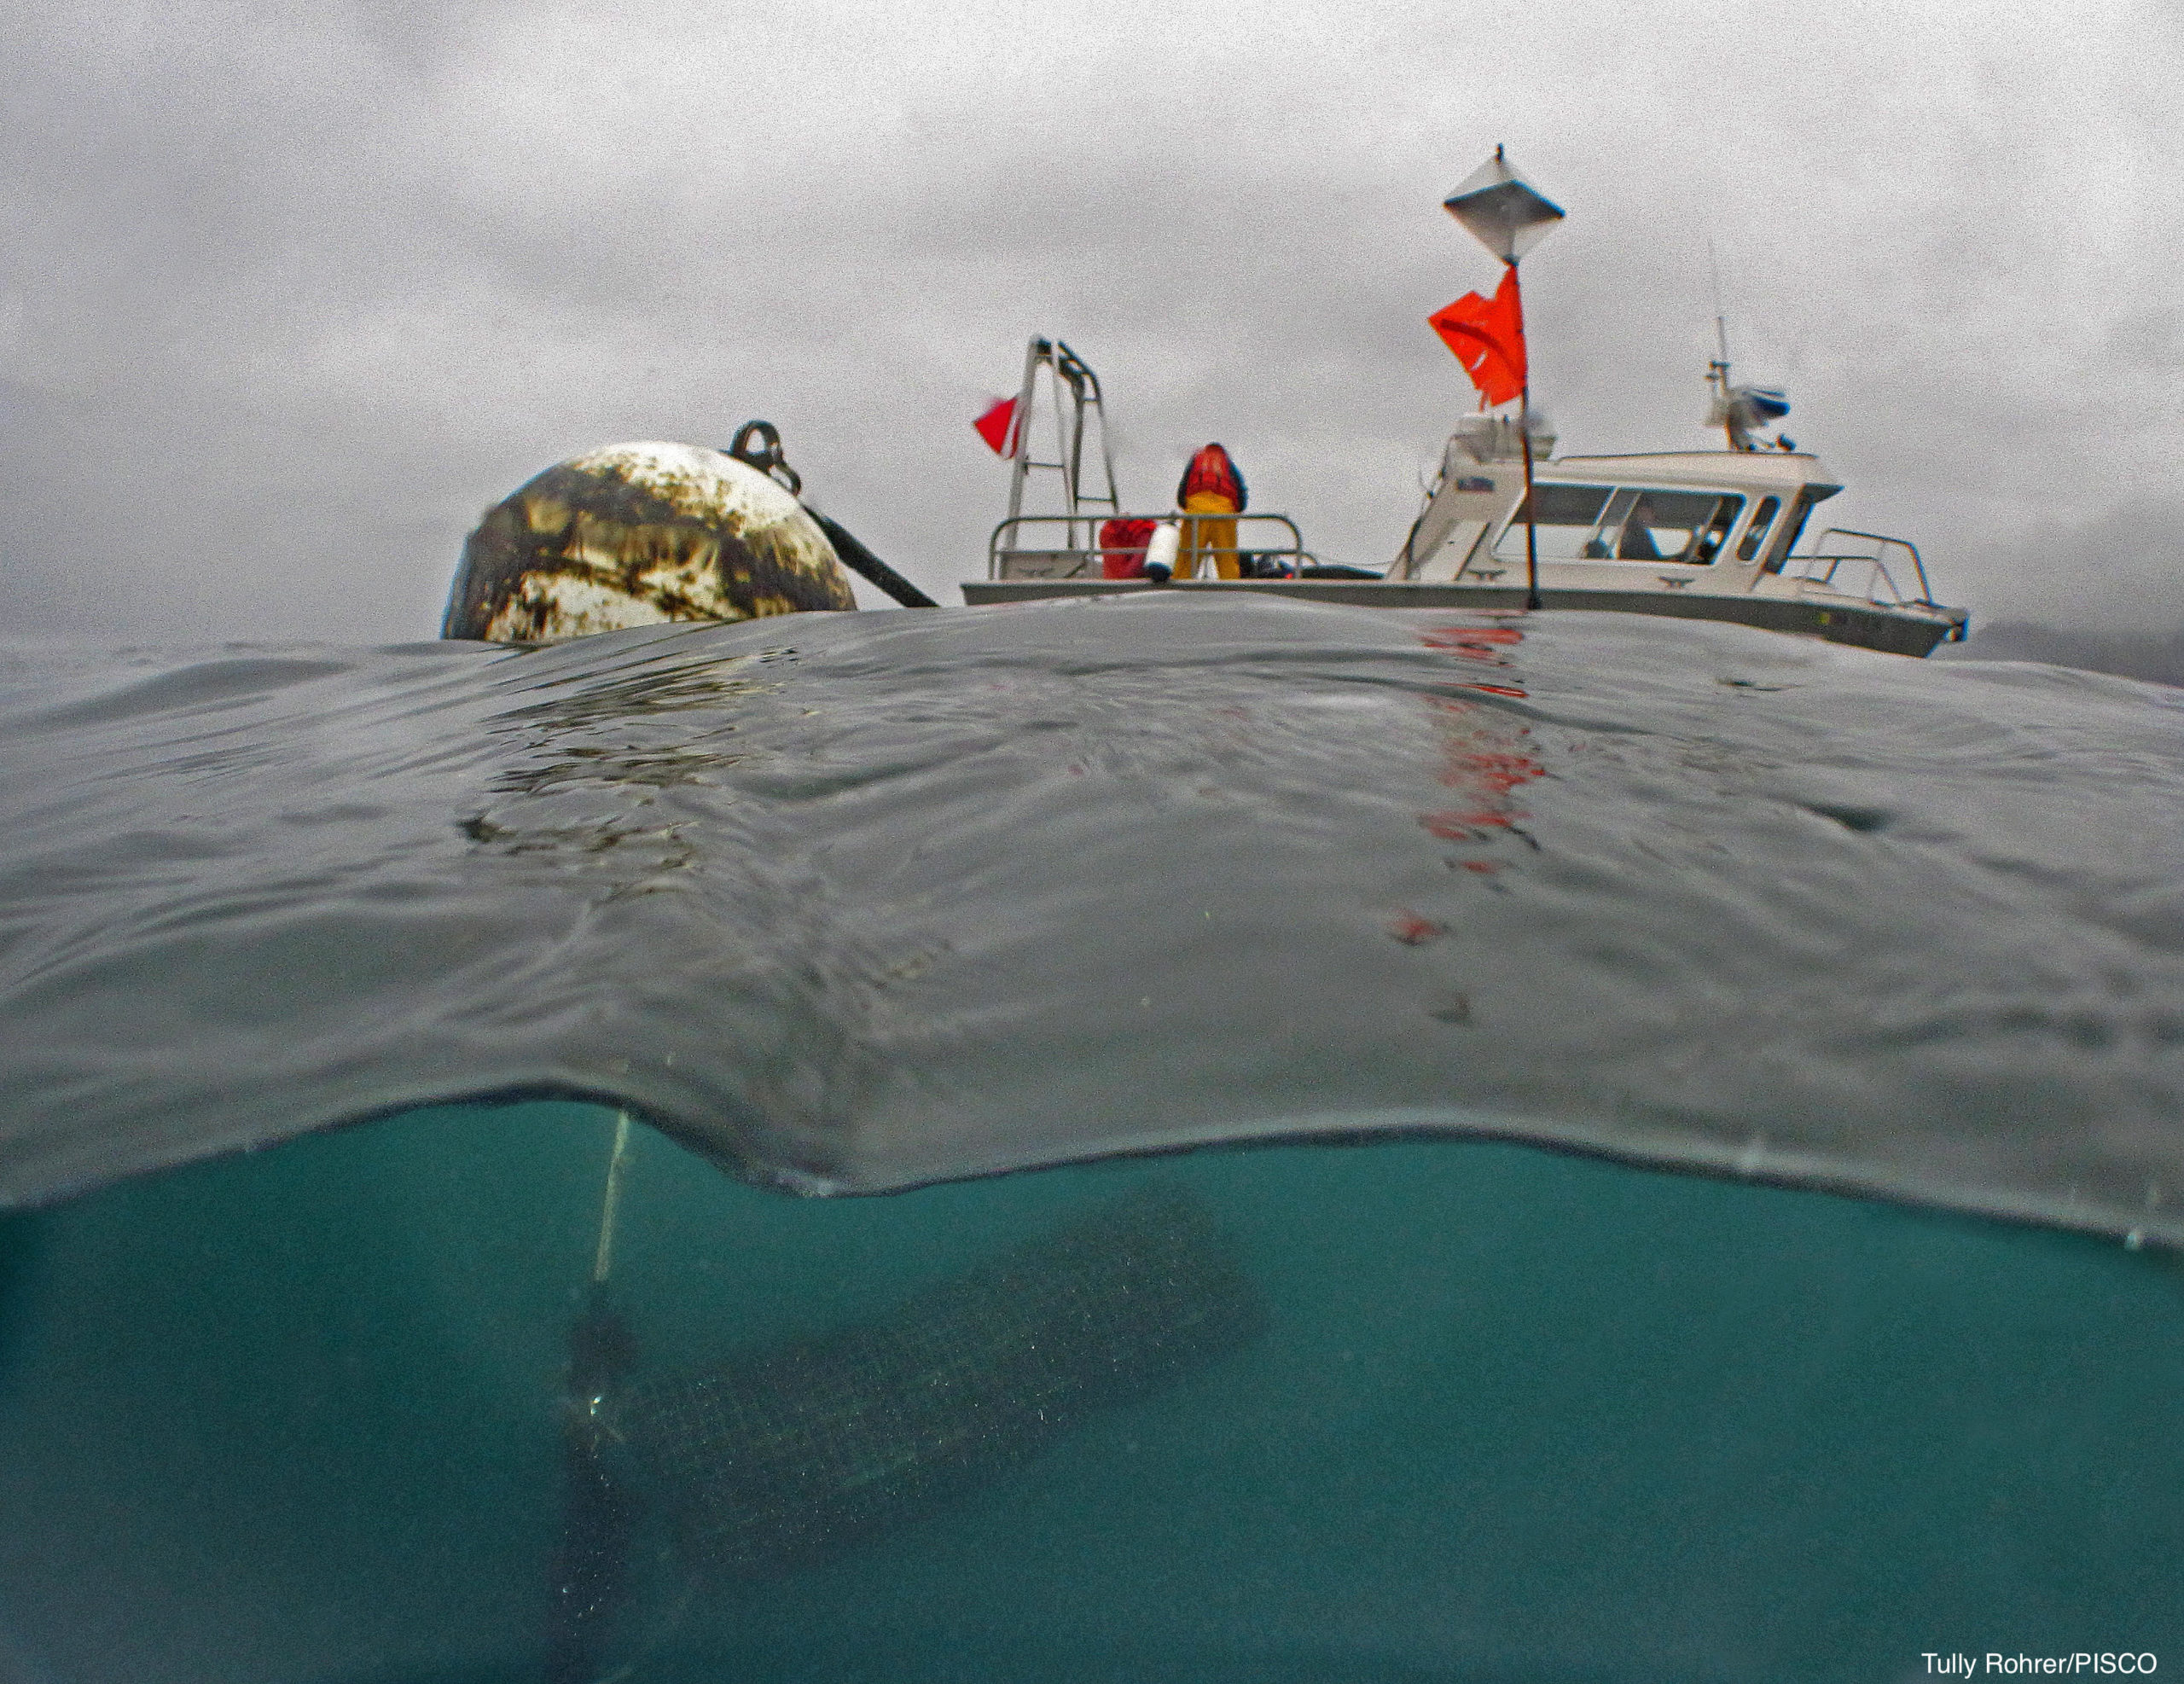 A boat and buoy, viewed from halfway below the surface of the water